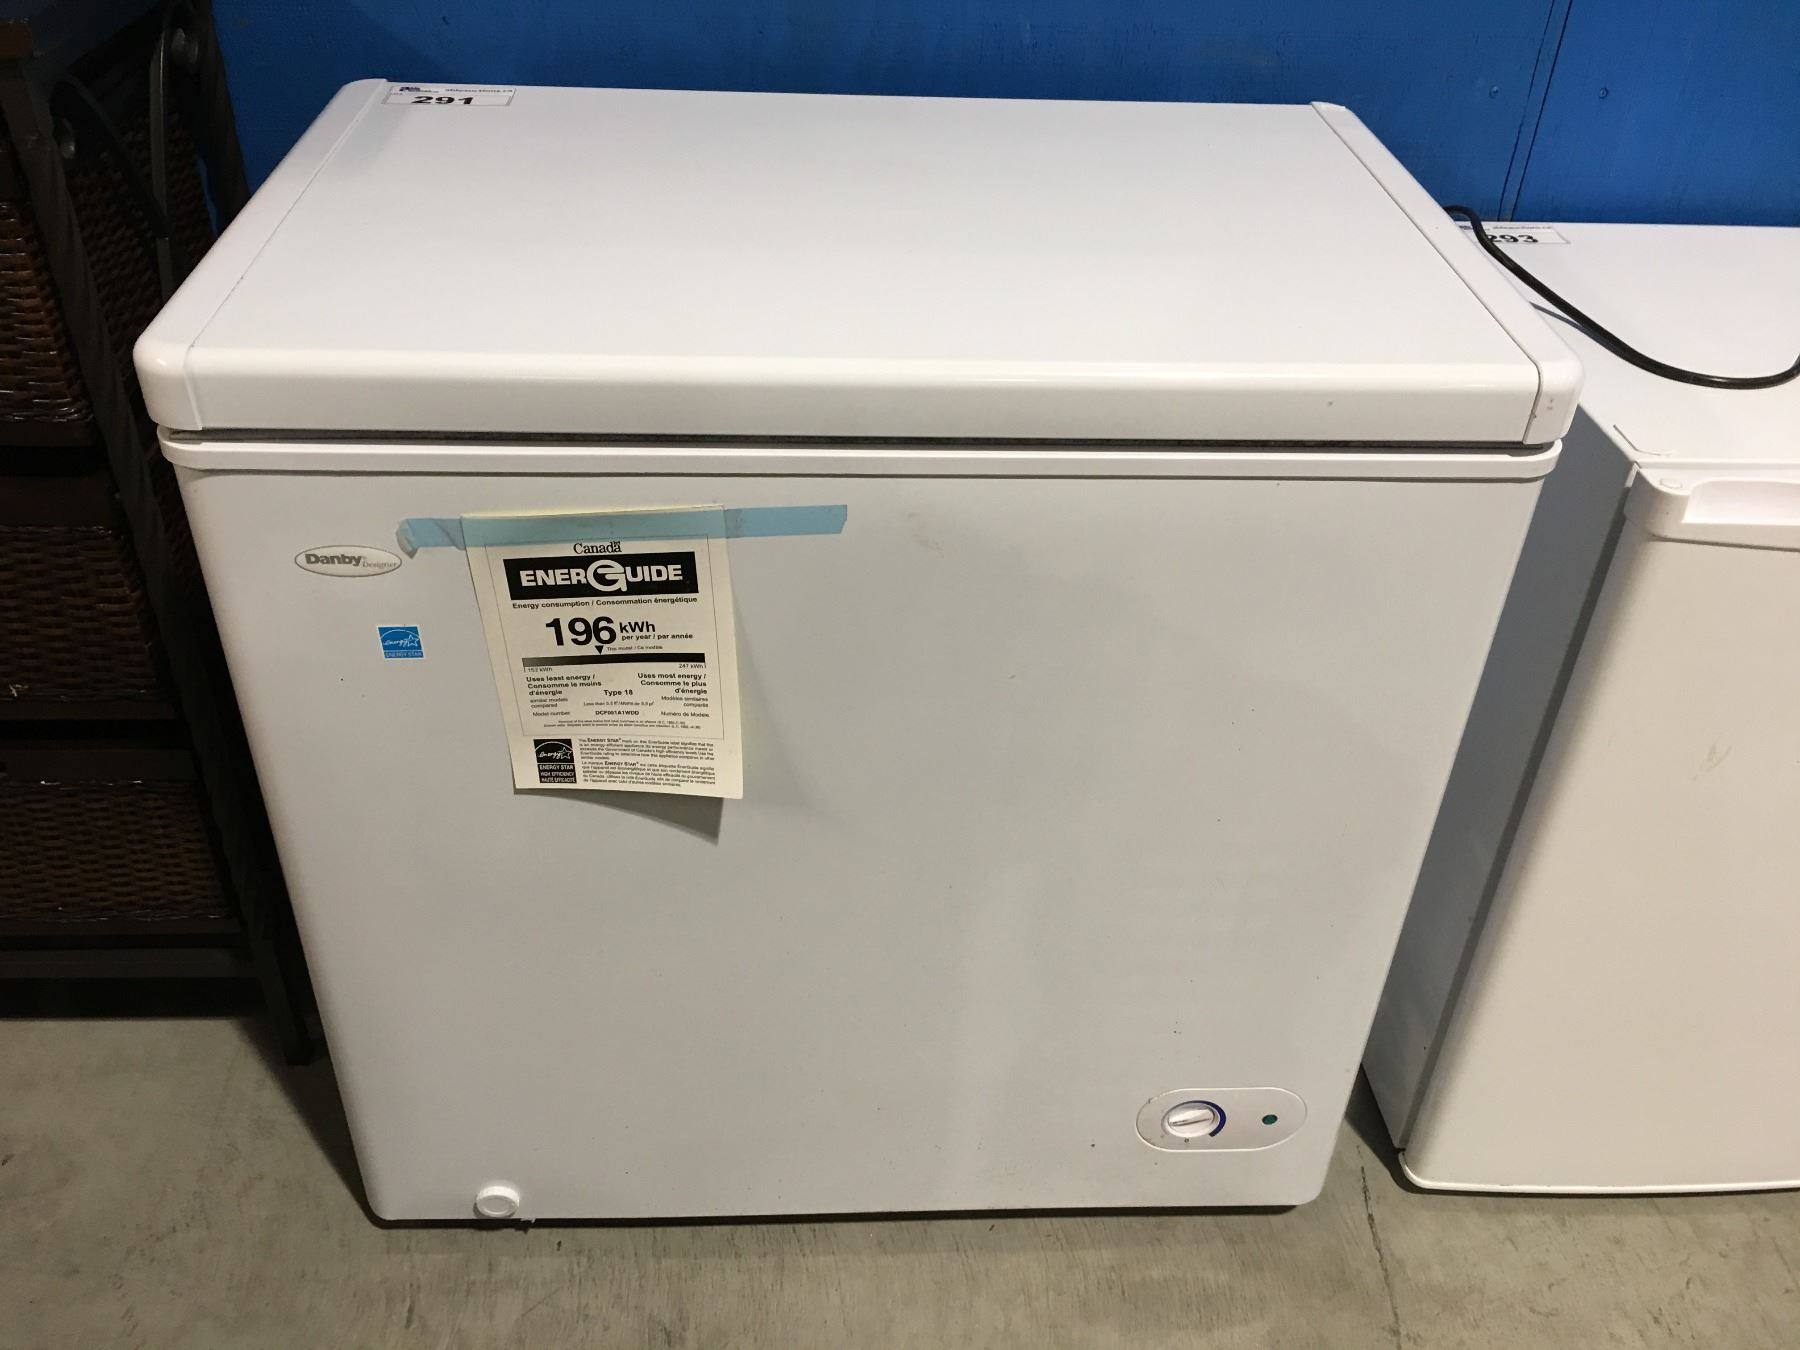 Image 1 : DANBY DESIGNER WHITE APARTMENT SIZE FREEZER